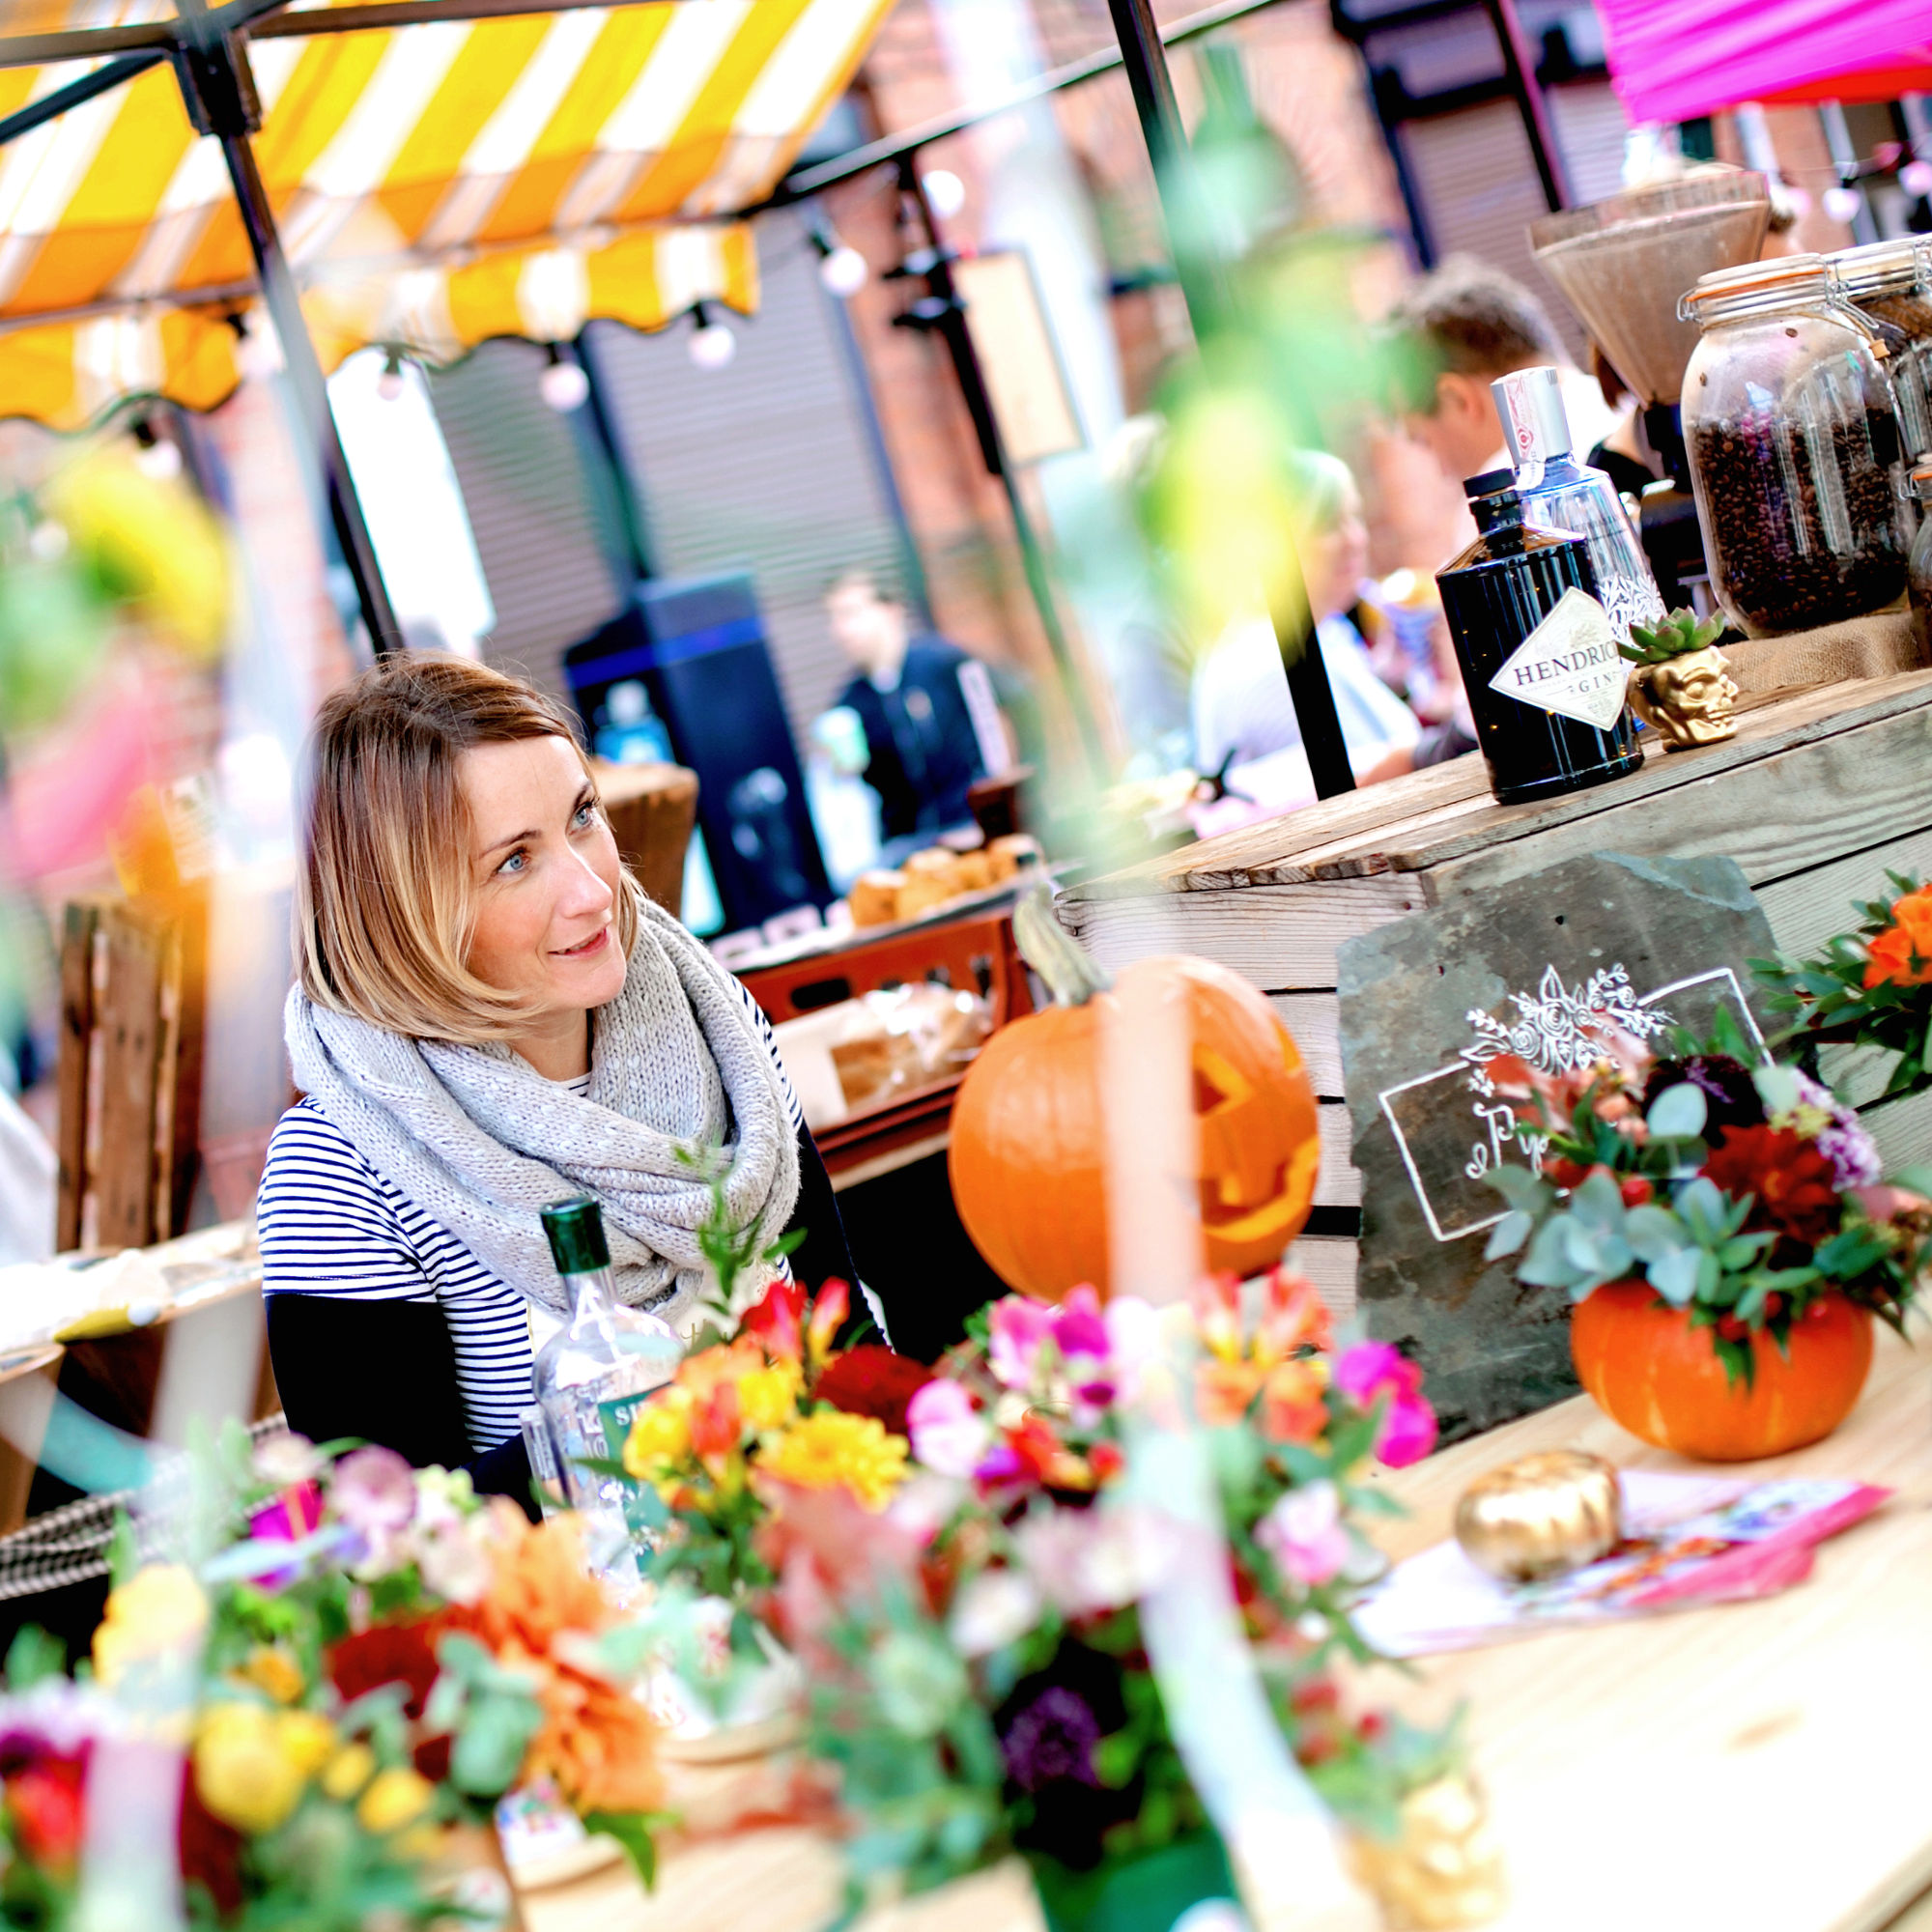 A photo of Orange Pip Market which links to a page about changing perceptions of Middlesbrough